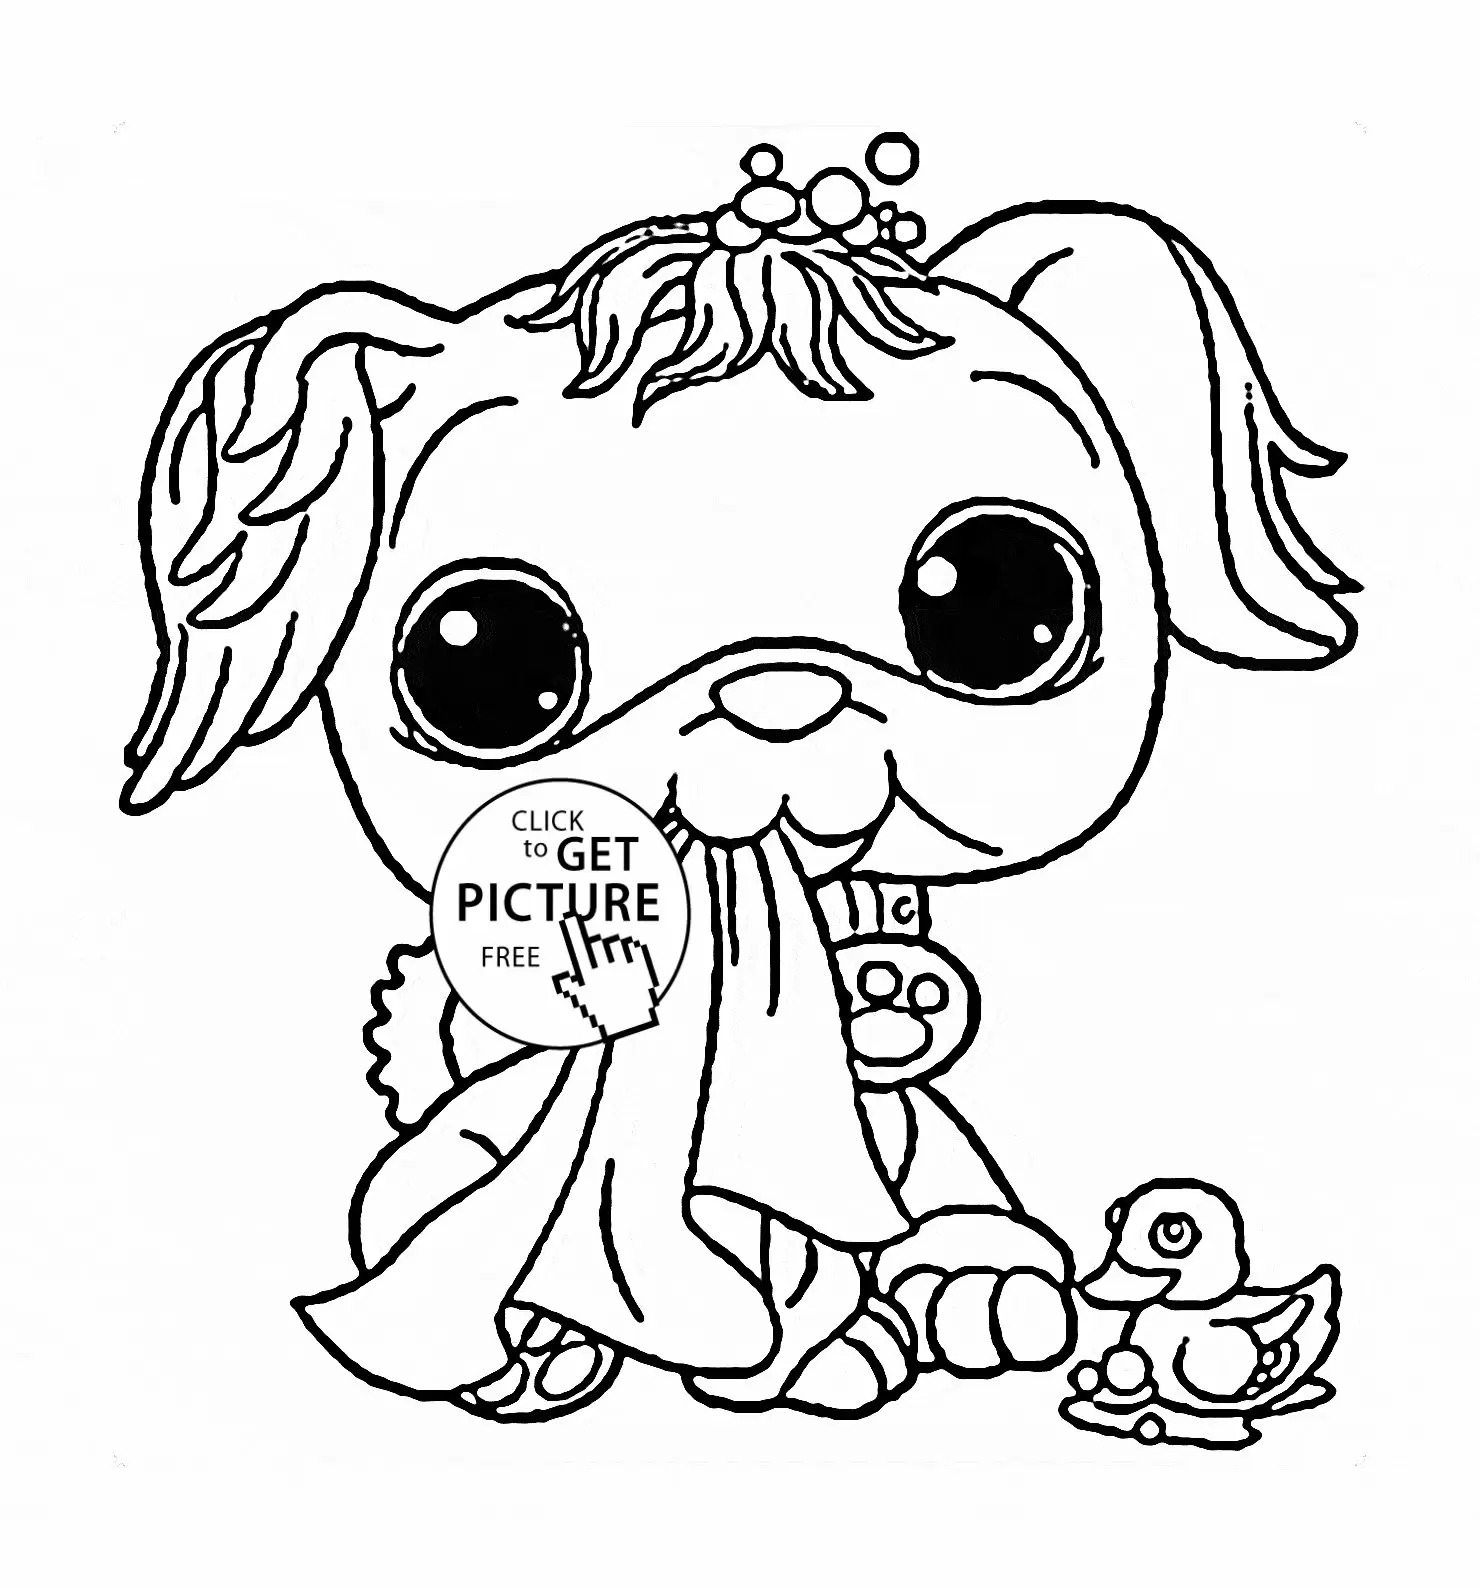 1480x1588 Kids Lps Coloring Pages Of Russell Ferguson Dachshund Popular